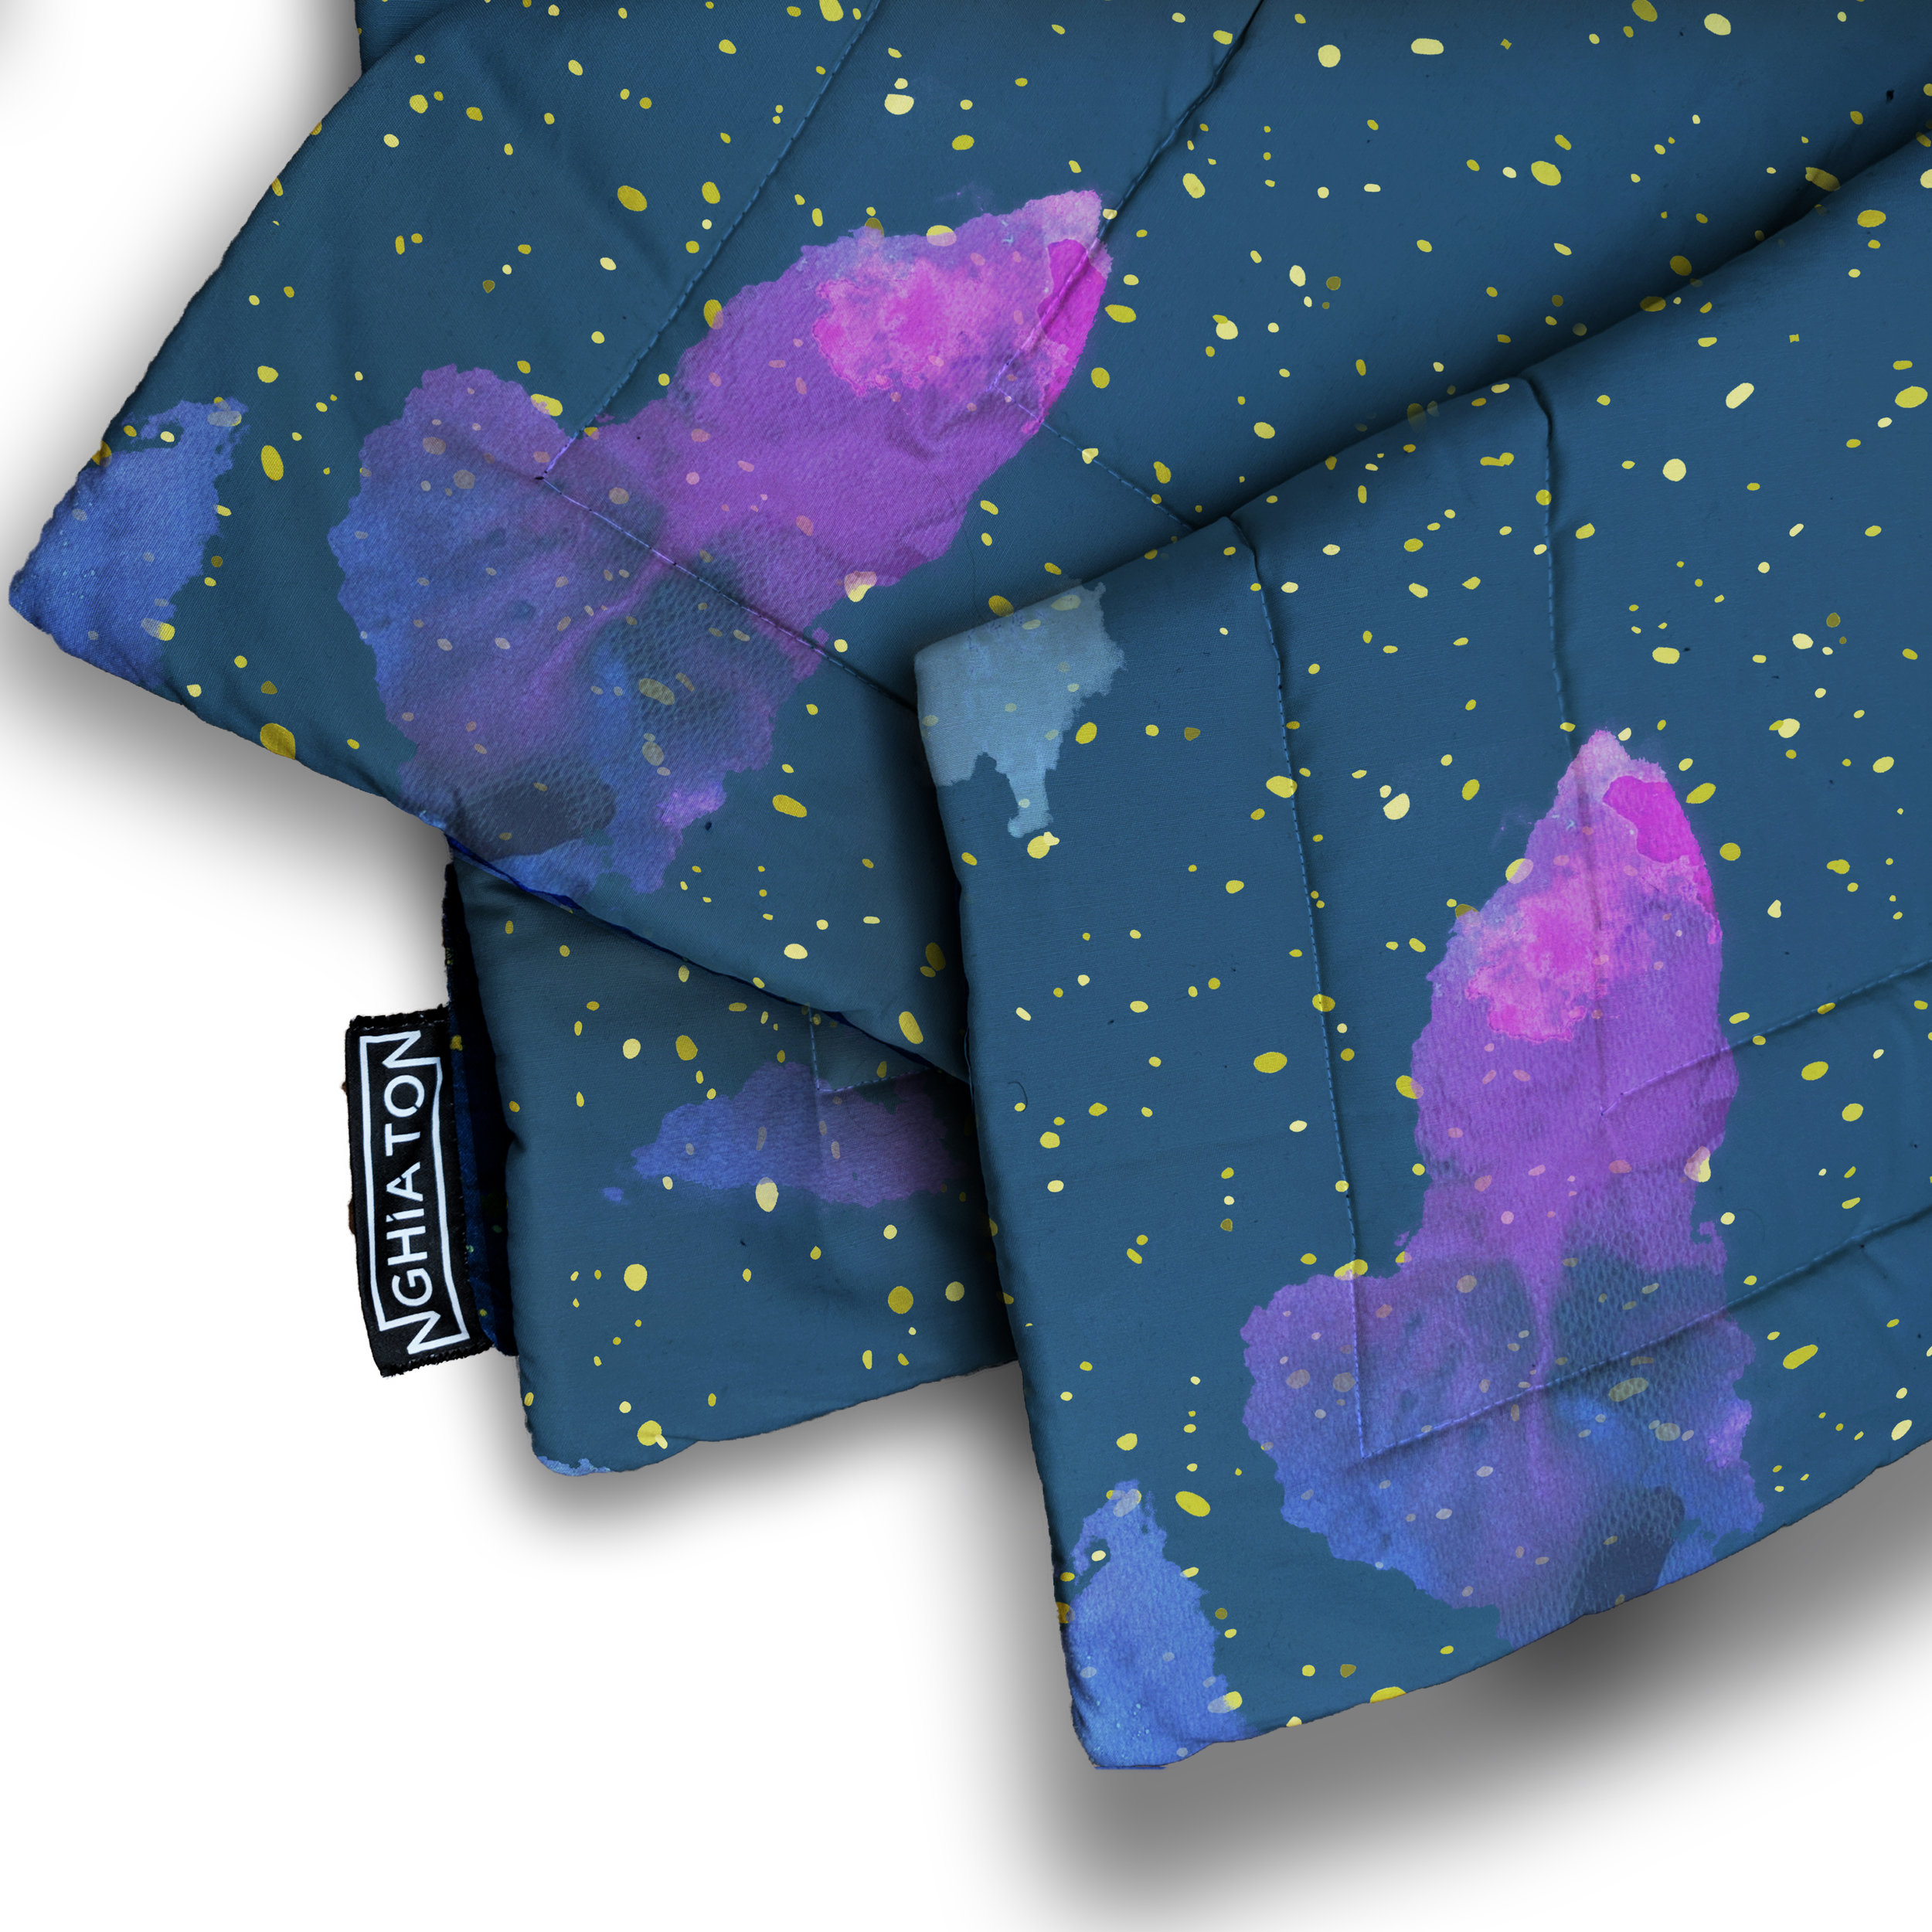 The Stars Quilted Blanket.jpg